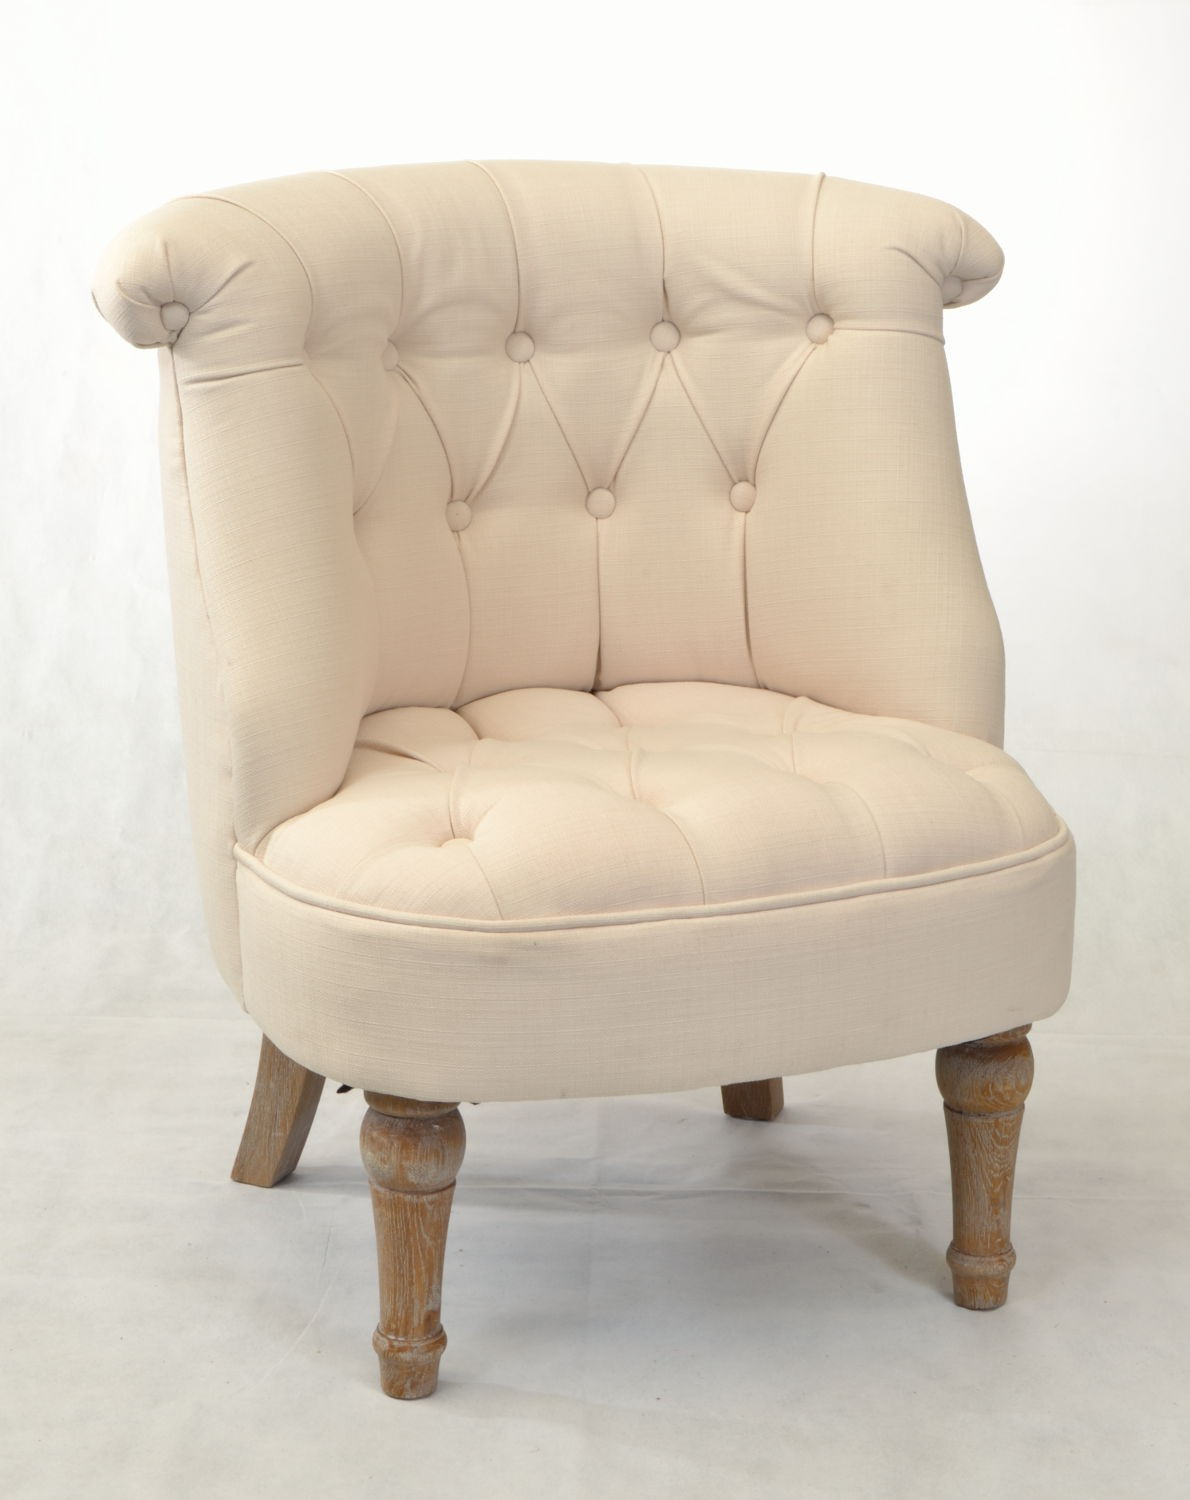 Chairs For Your Bedroom Buy A Small Bedroom Chair For An Accent Piece To Your Room